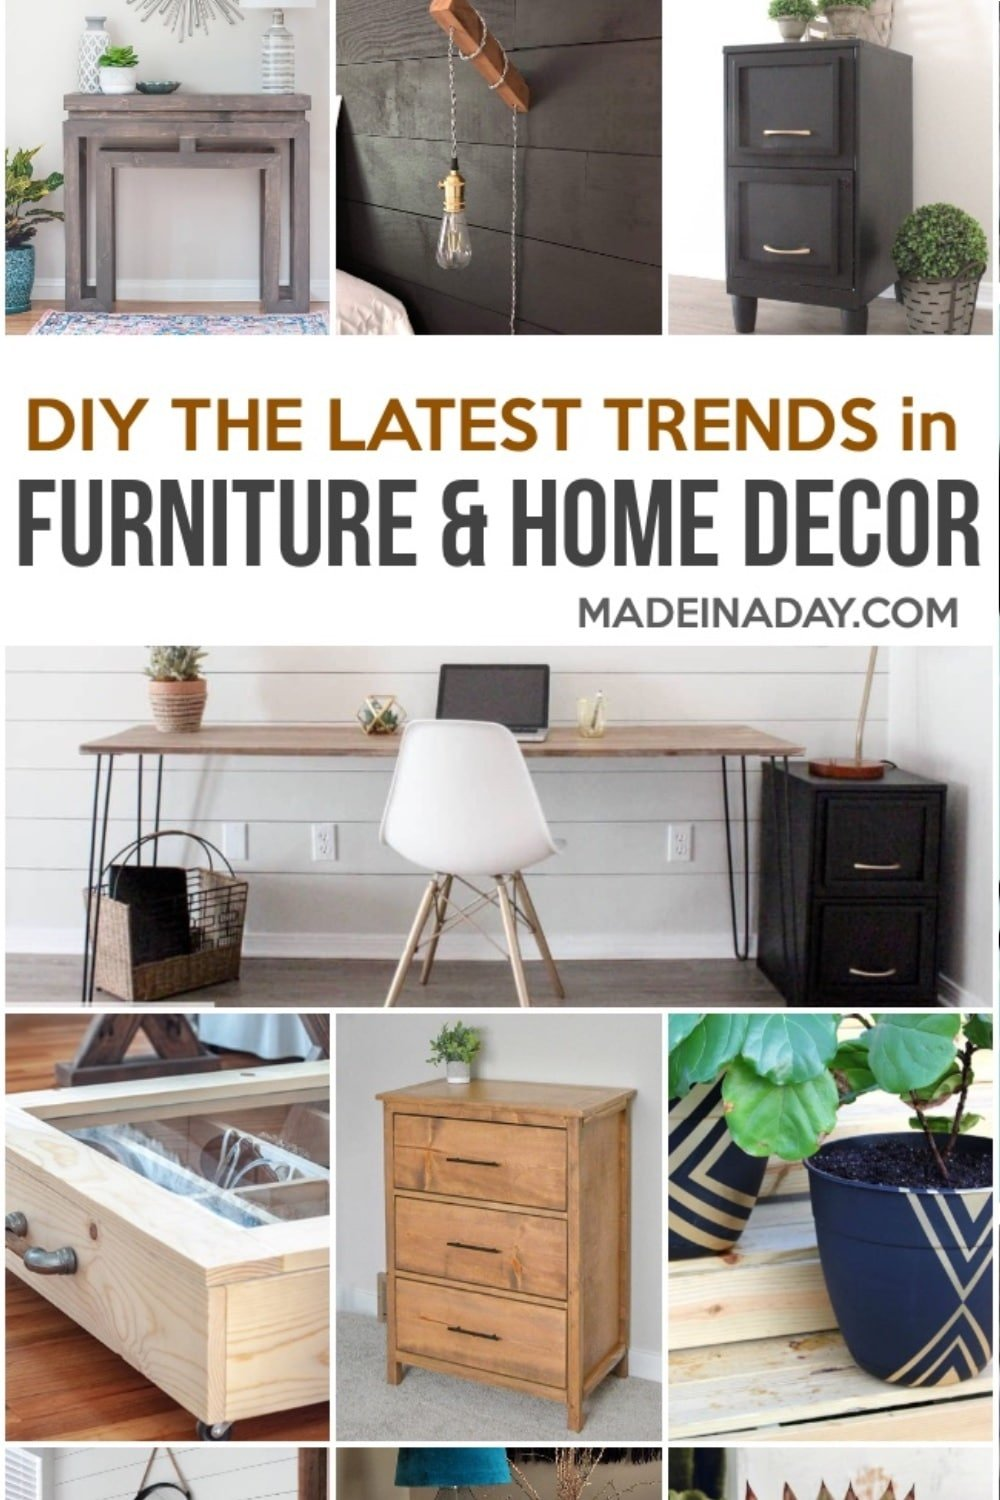 DIY Furniture and Home Decor Projects for Every Style